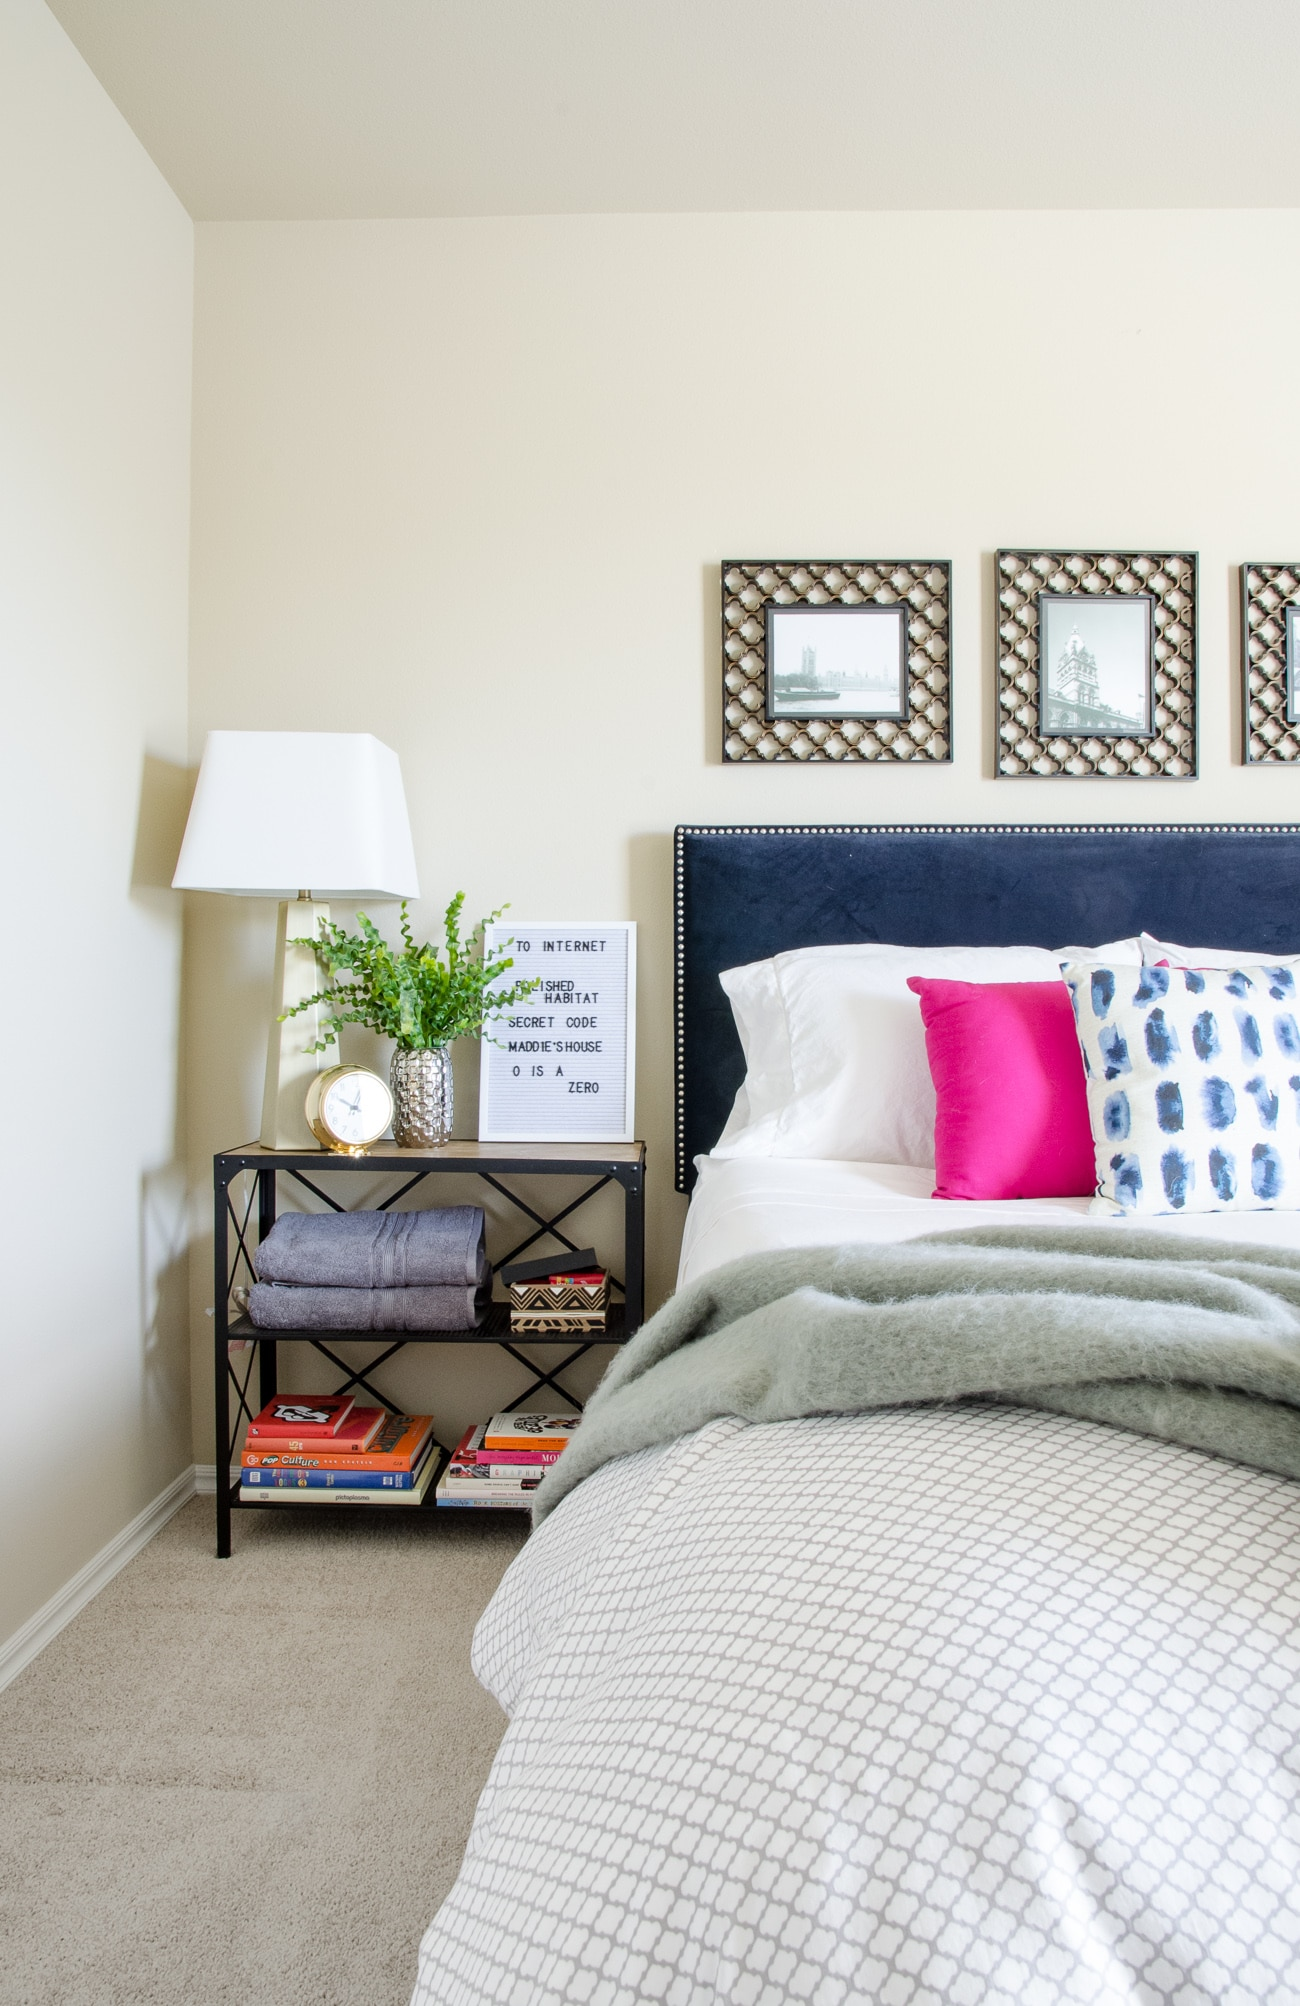 Guest bedroom with bookshelf that doubles as a nighstand